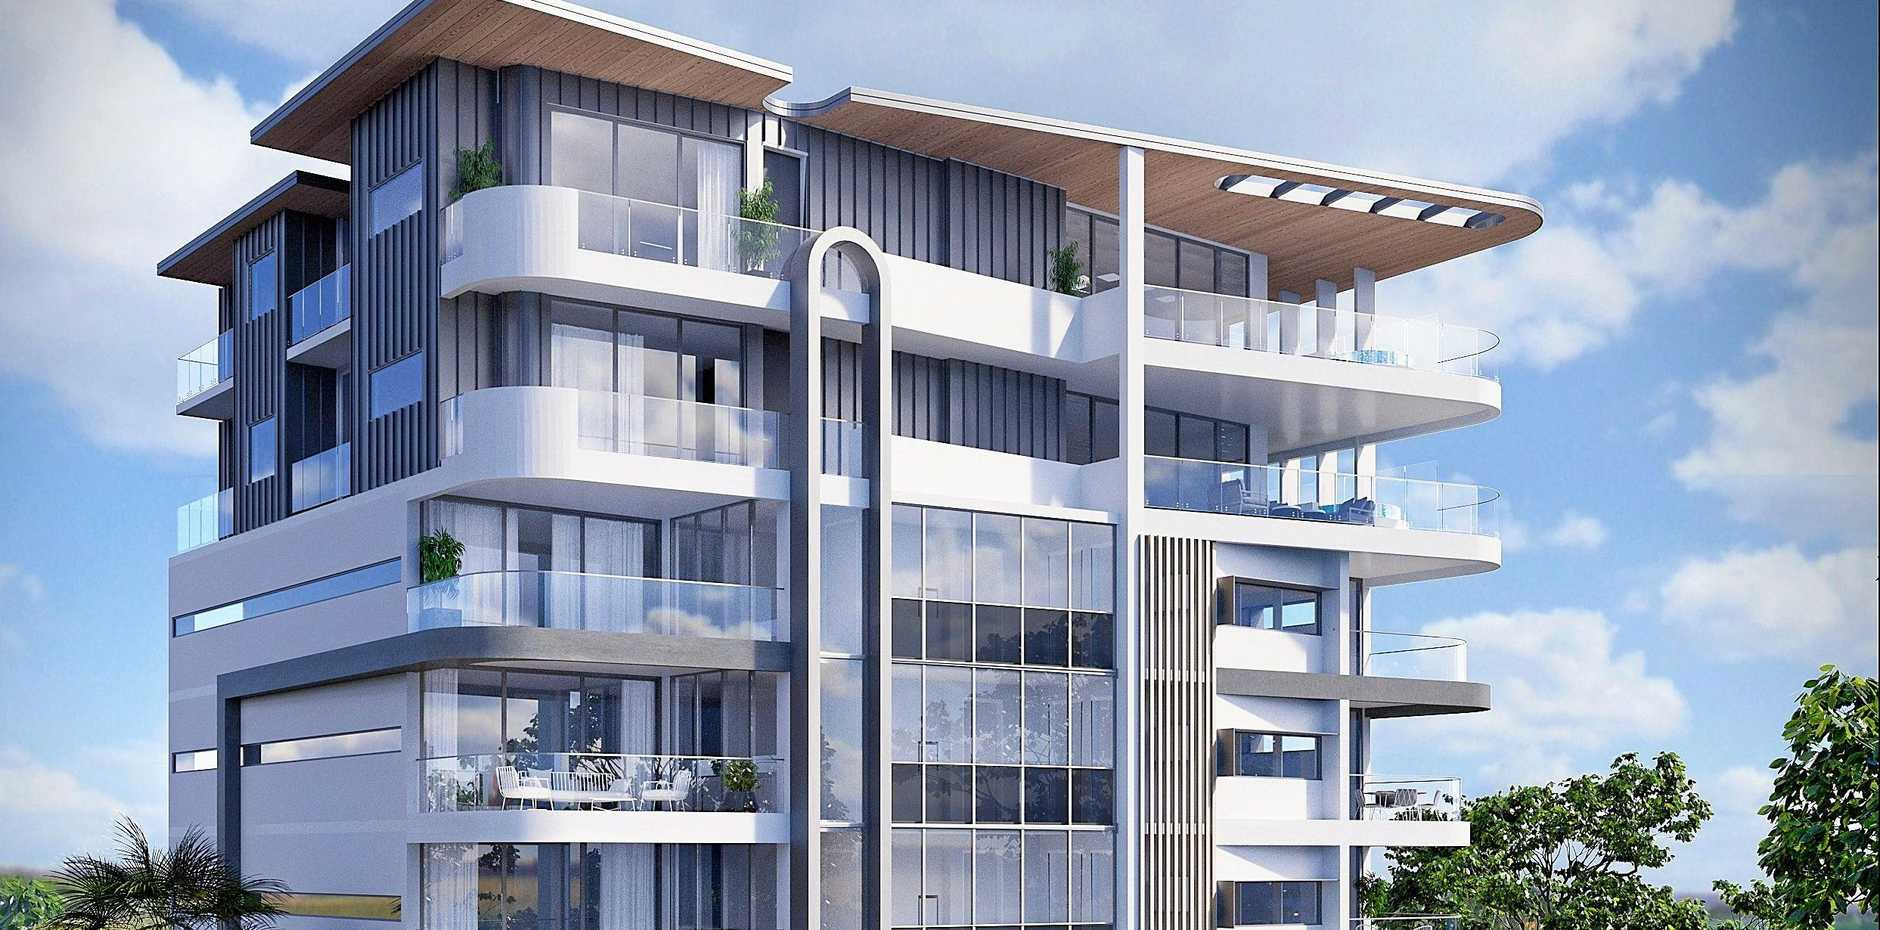 UPDATE: A revised render of the Picasso development proposed in Naroo Ct, Mooloolaba, was submitted in March.